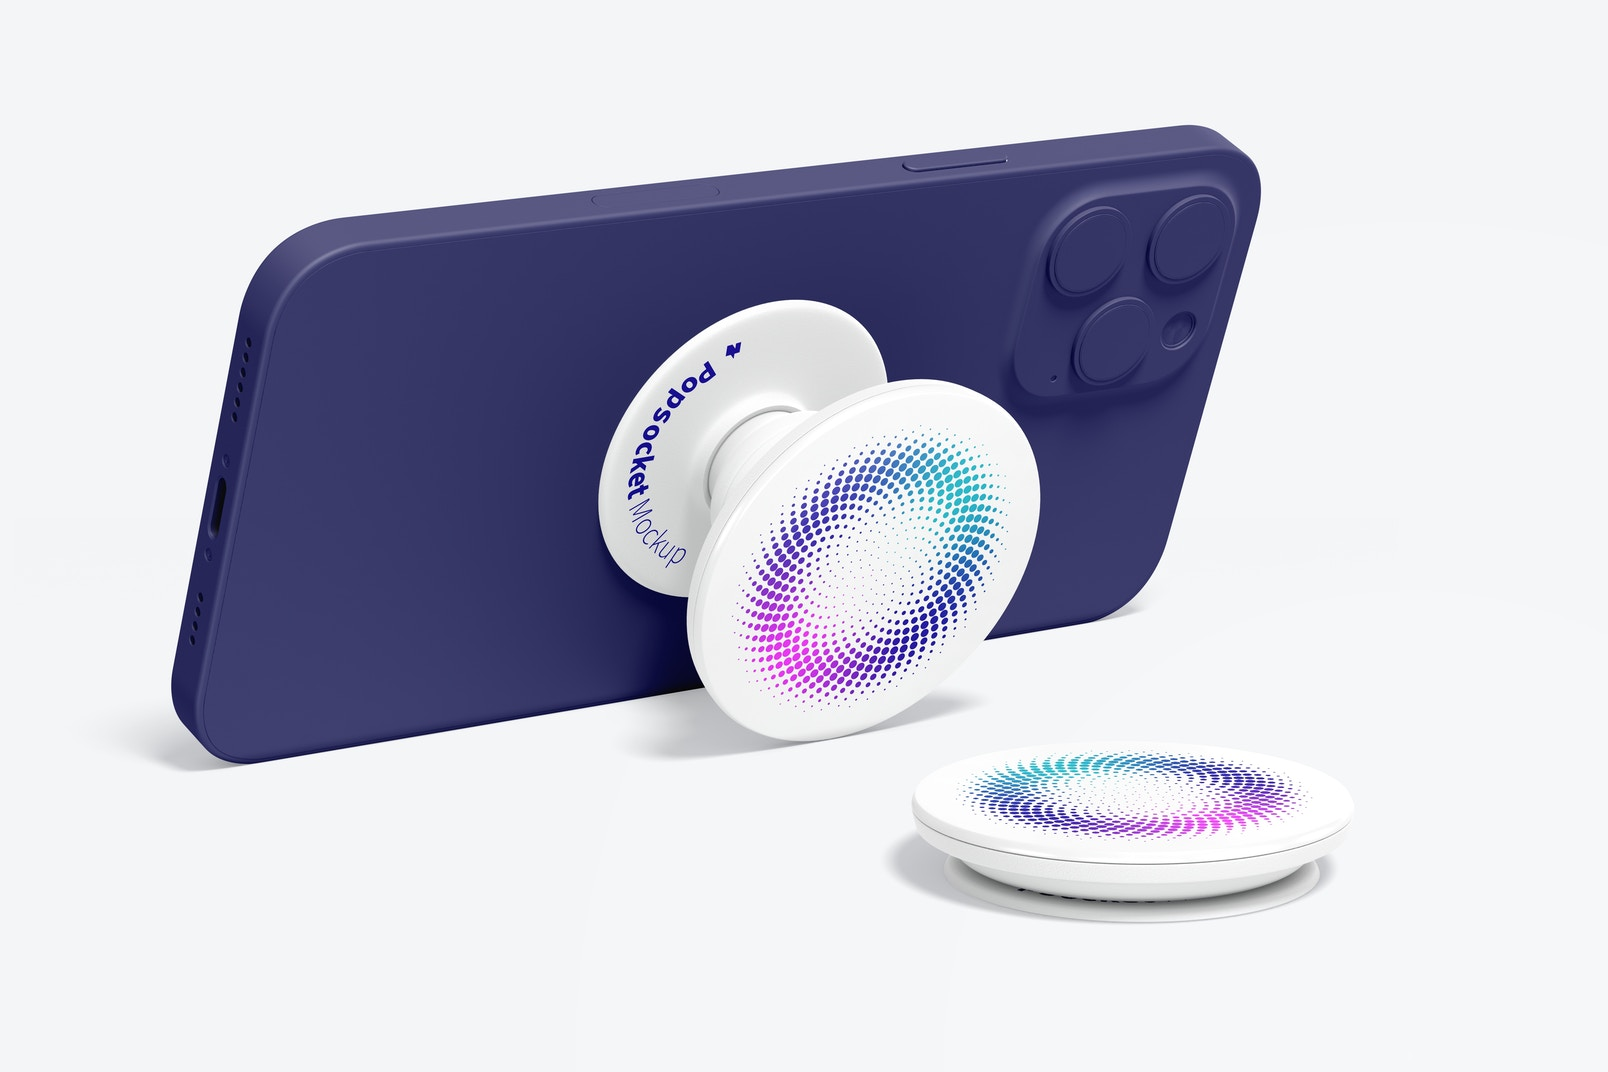 Popsockets Mockup with Phone